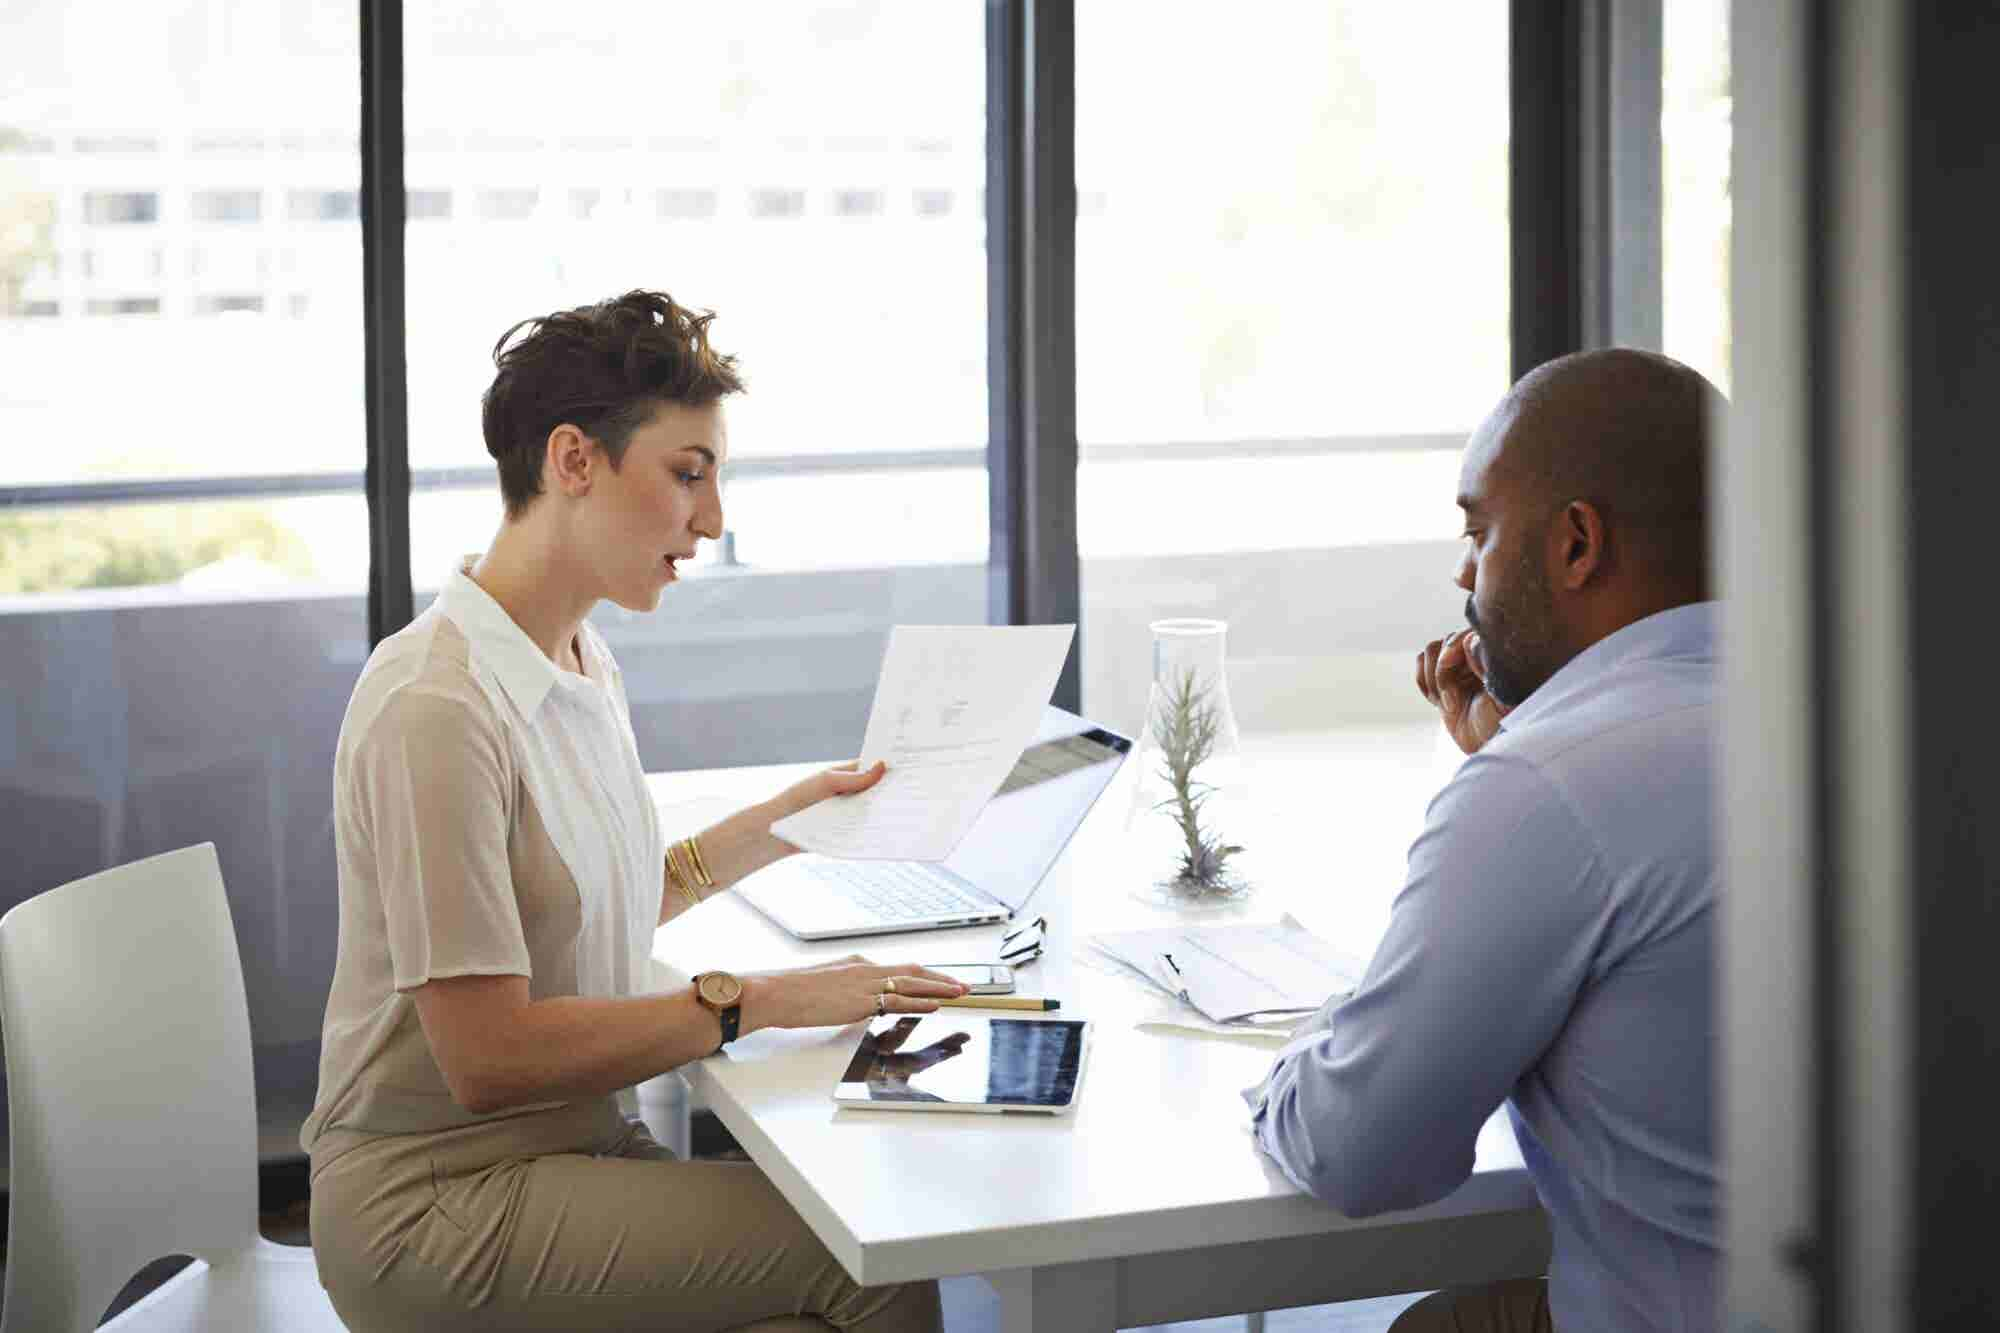 5 Things to Do When an Employee's Performance Deteriorates